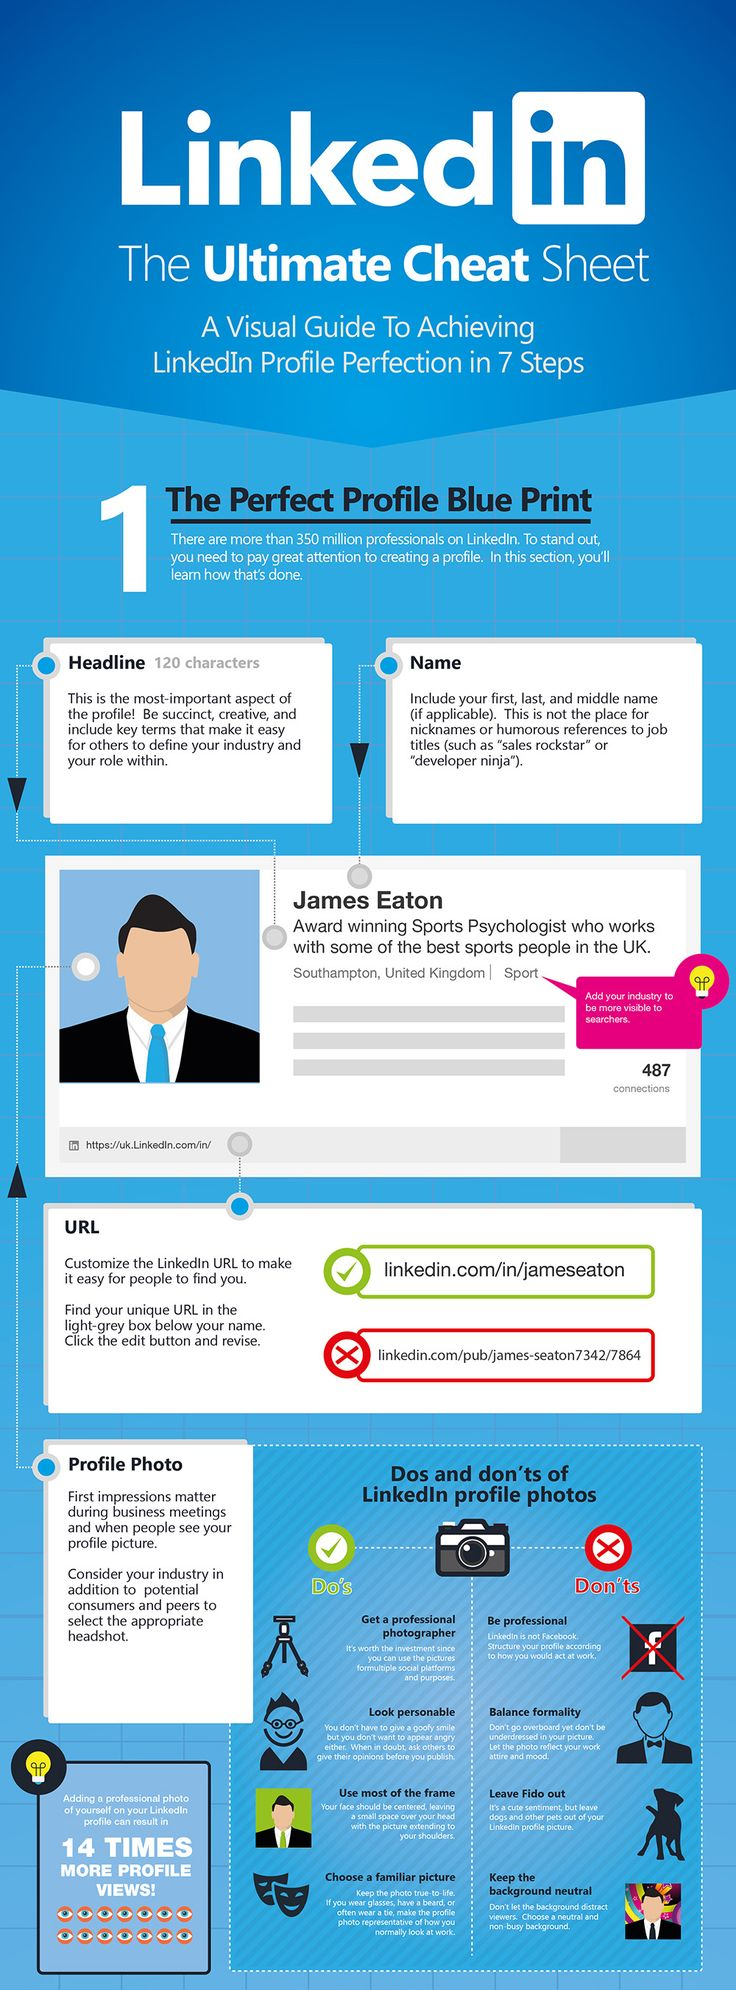 How to Keep Yourself Safe From Fake LinkedIn Profiles